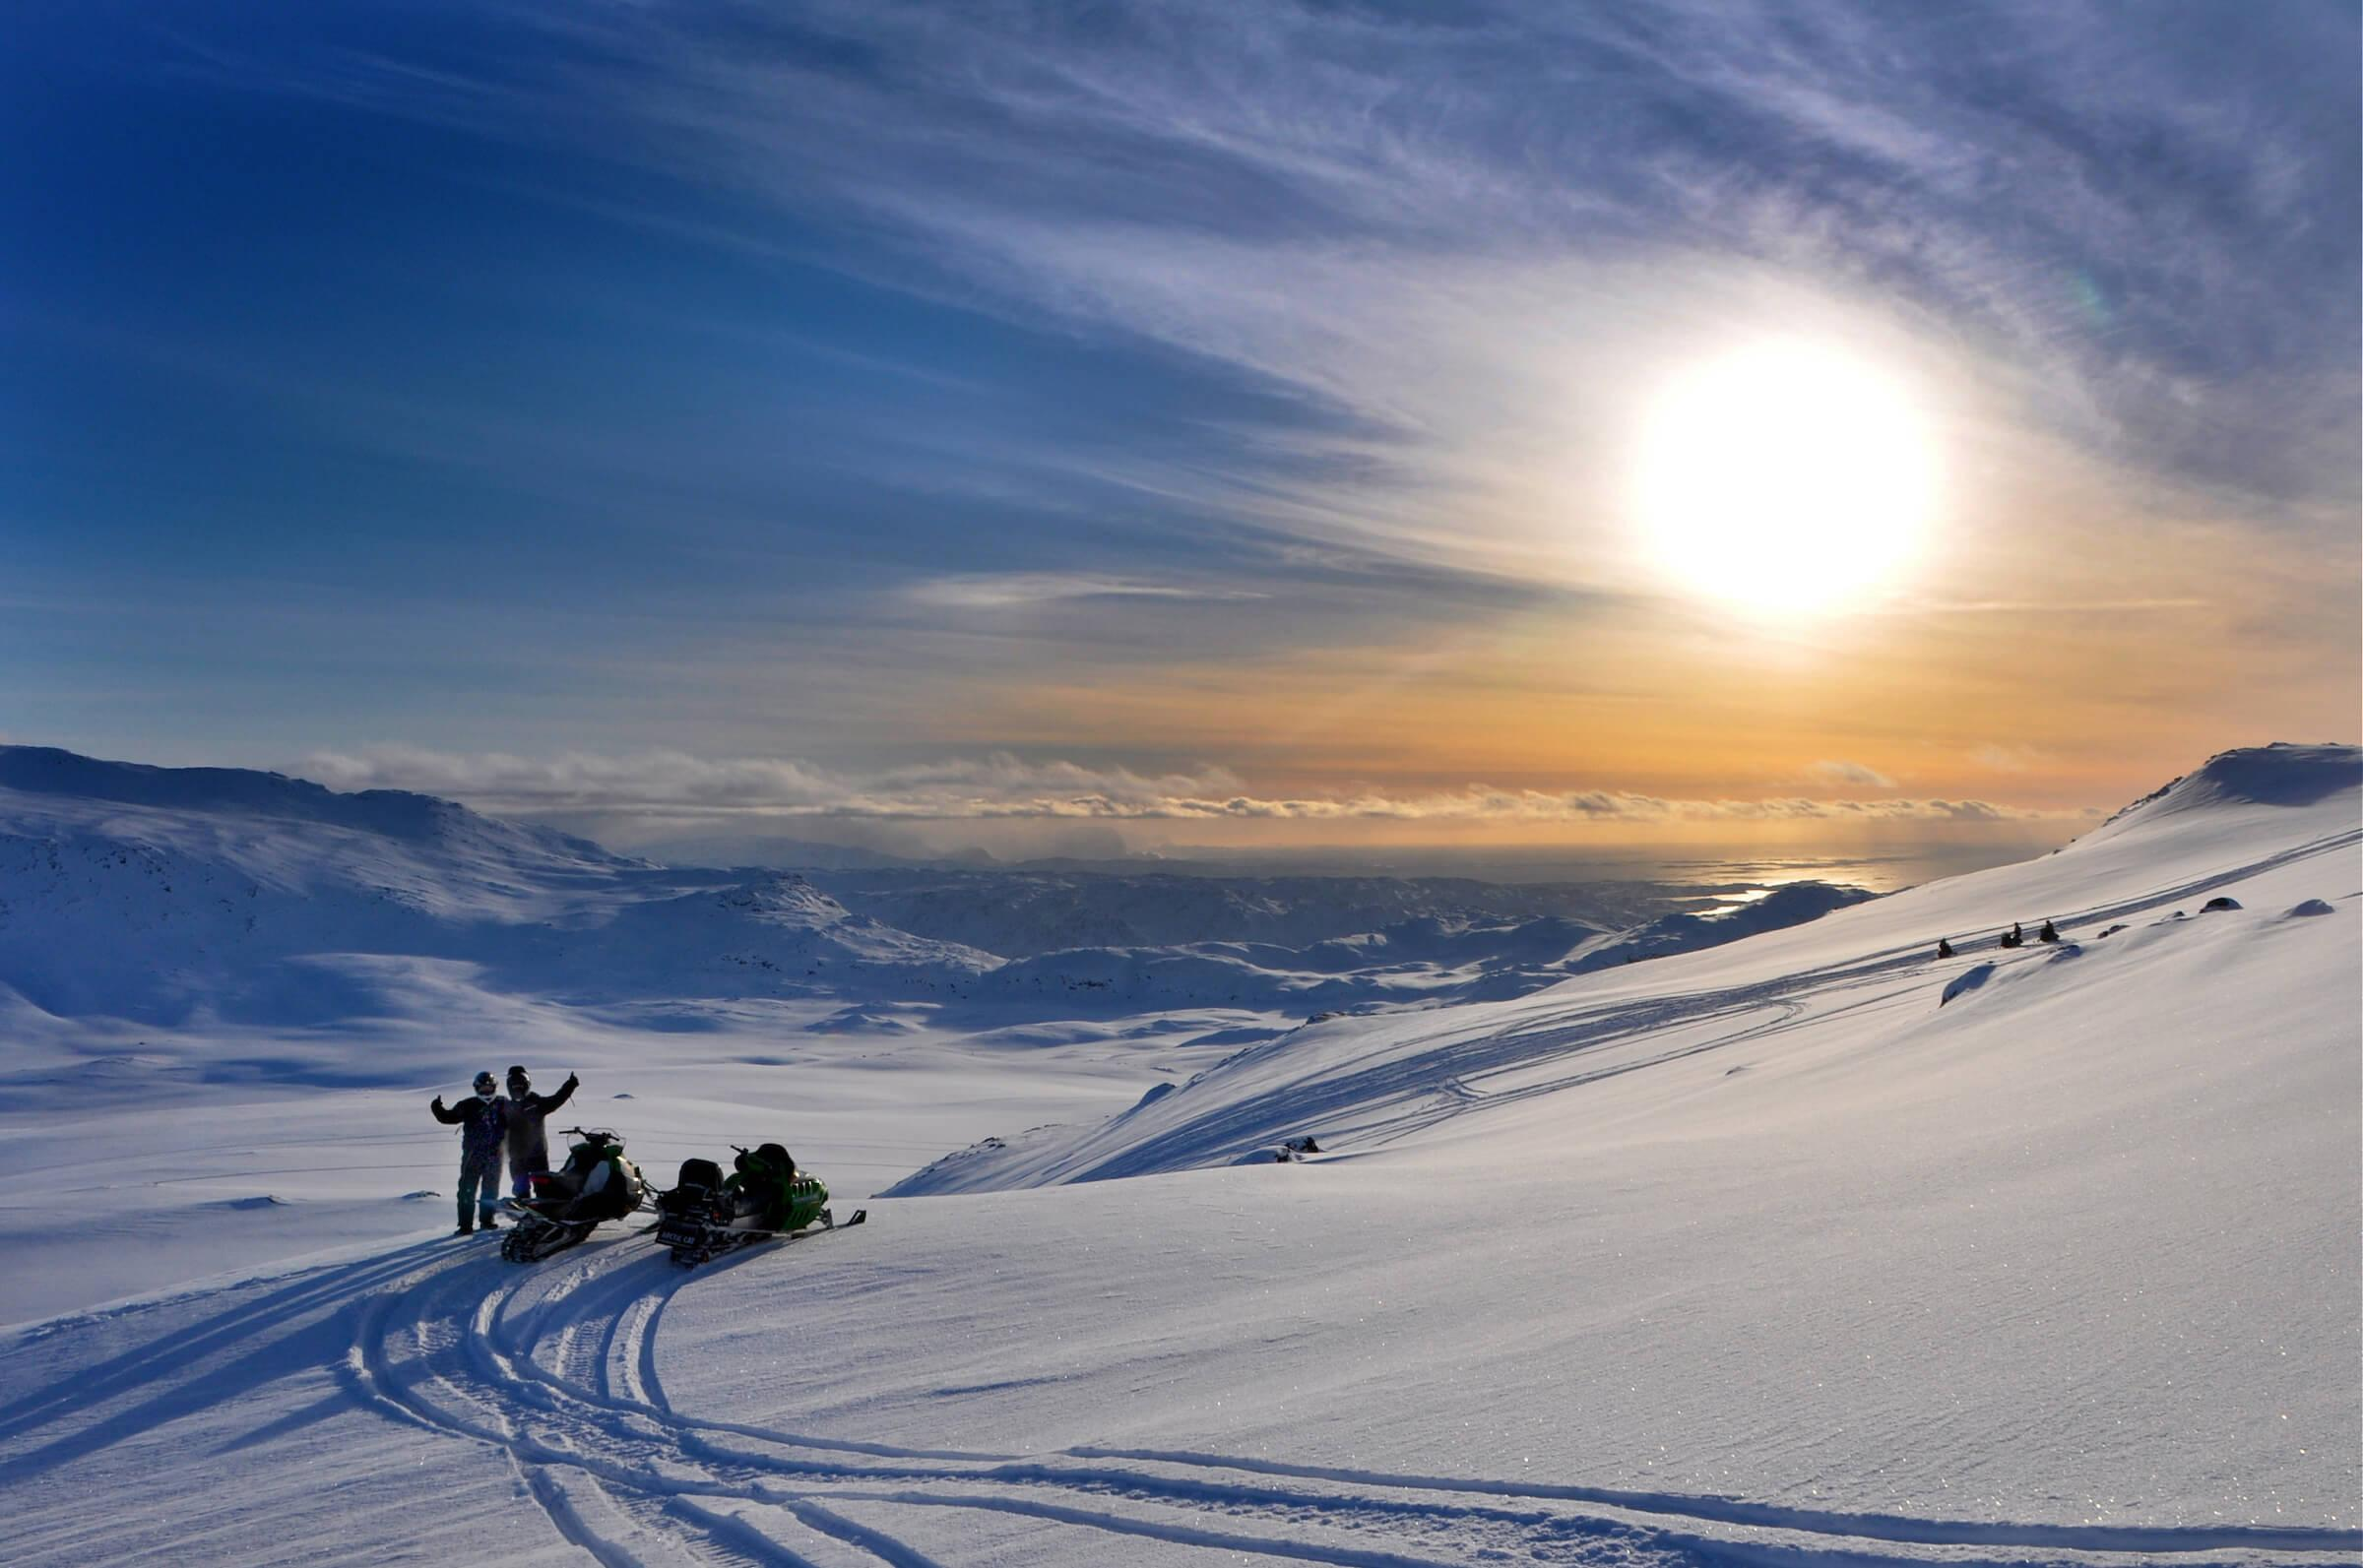 Two snowmobilers in the backcountry near Sisimiut in Greenland. Photo by Mads Pihl.